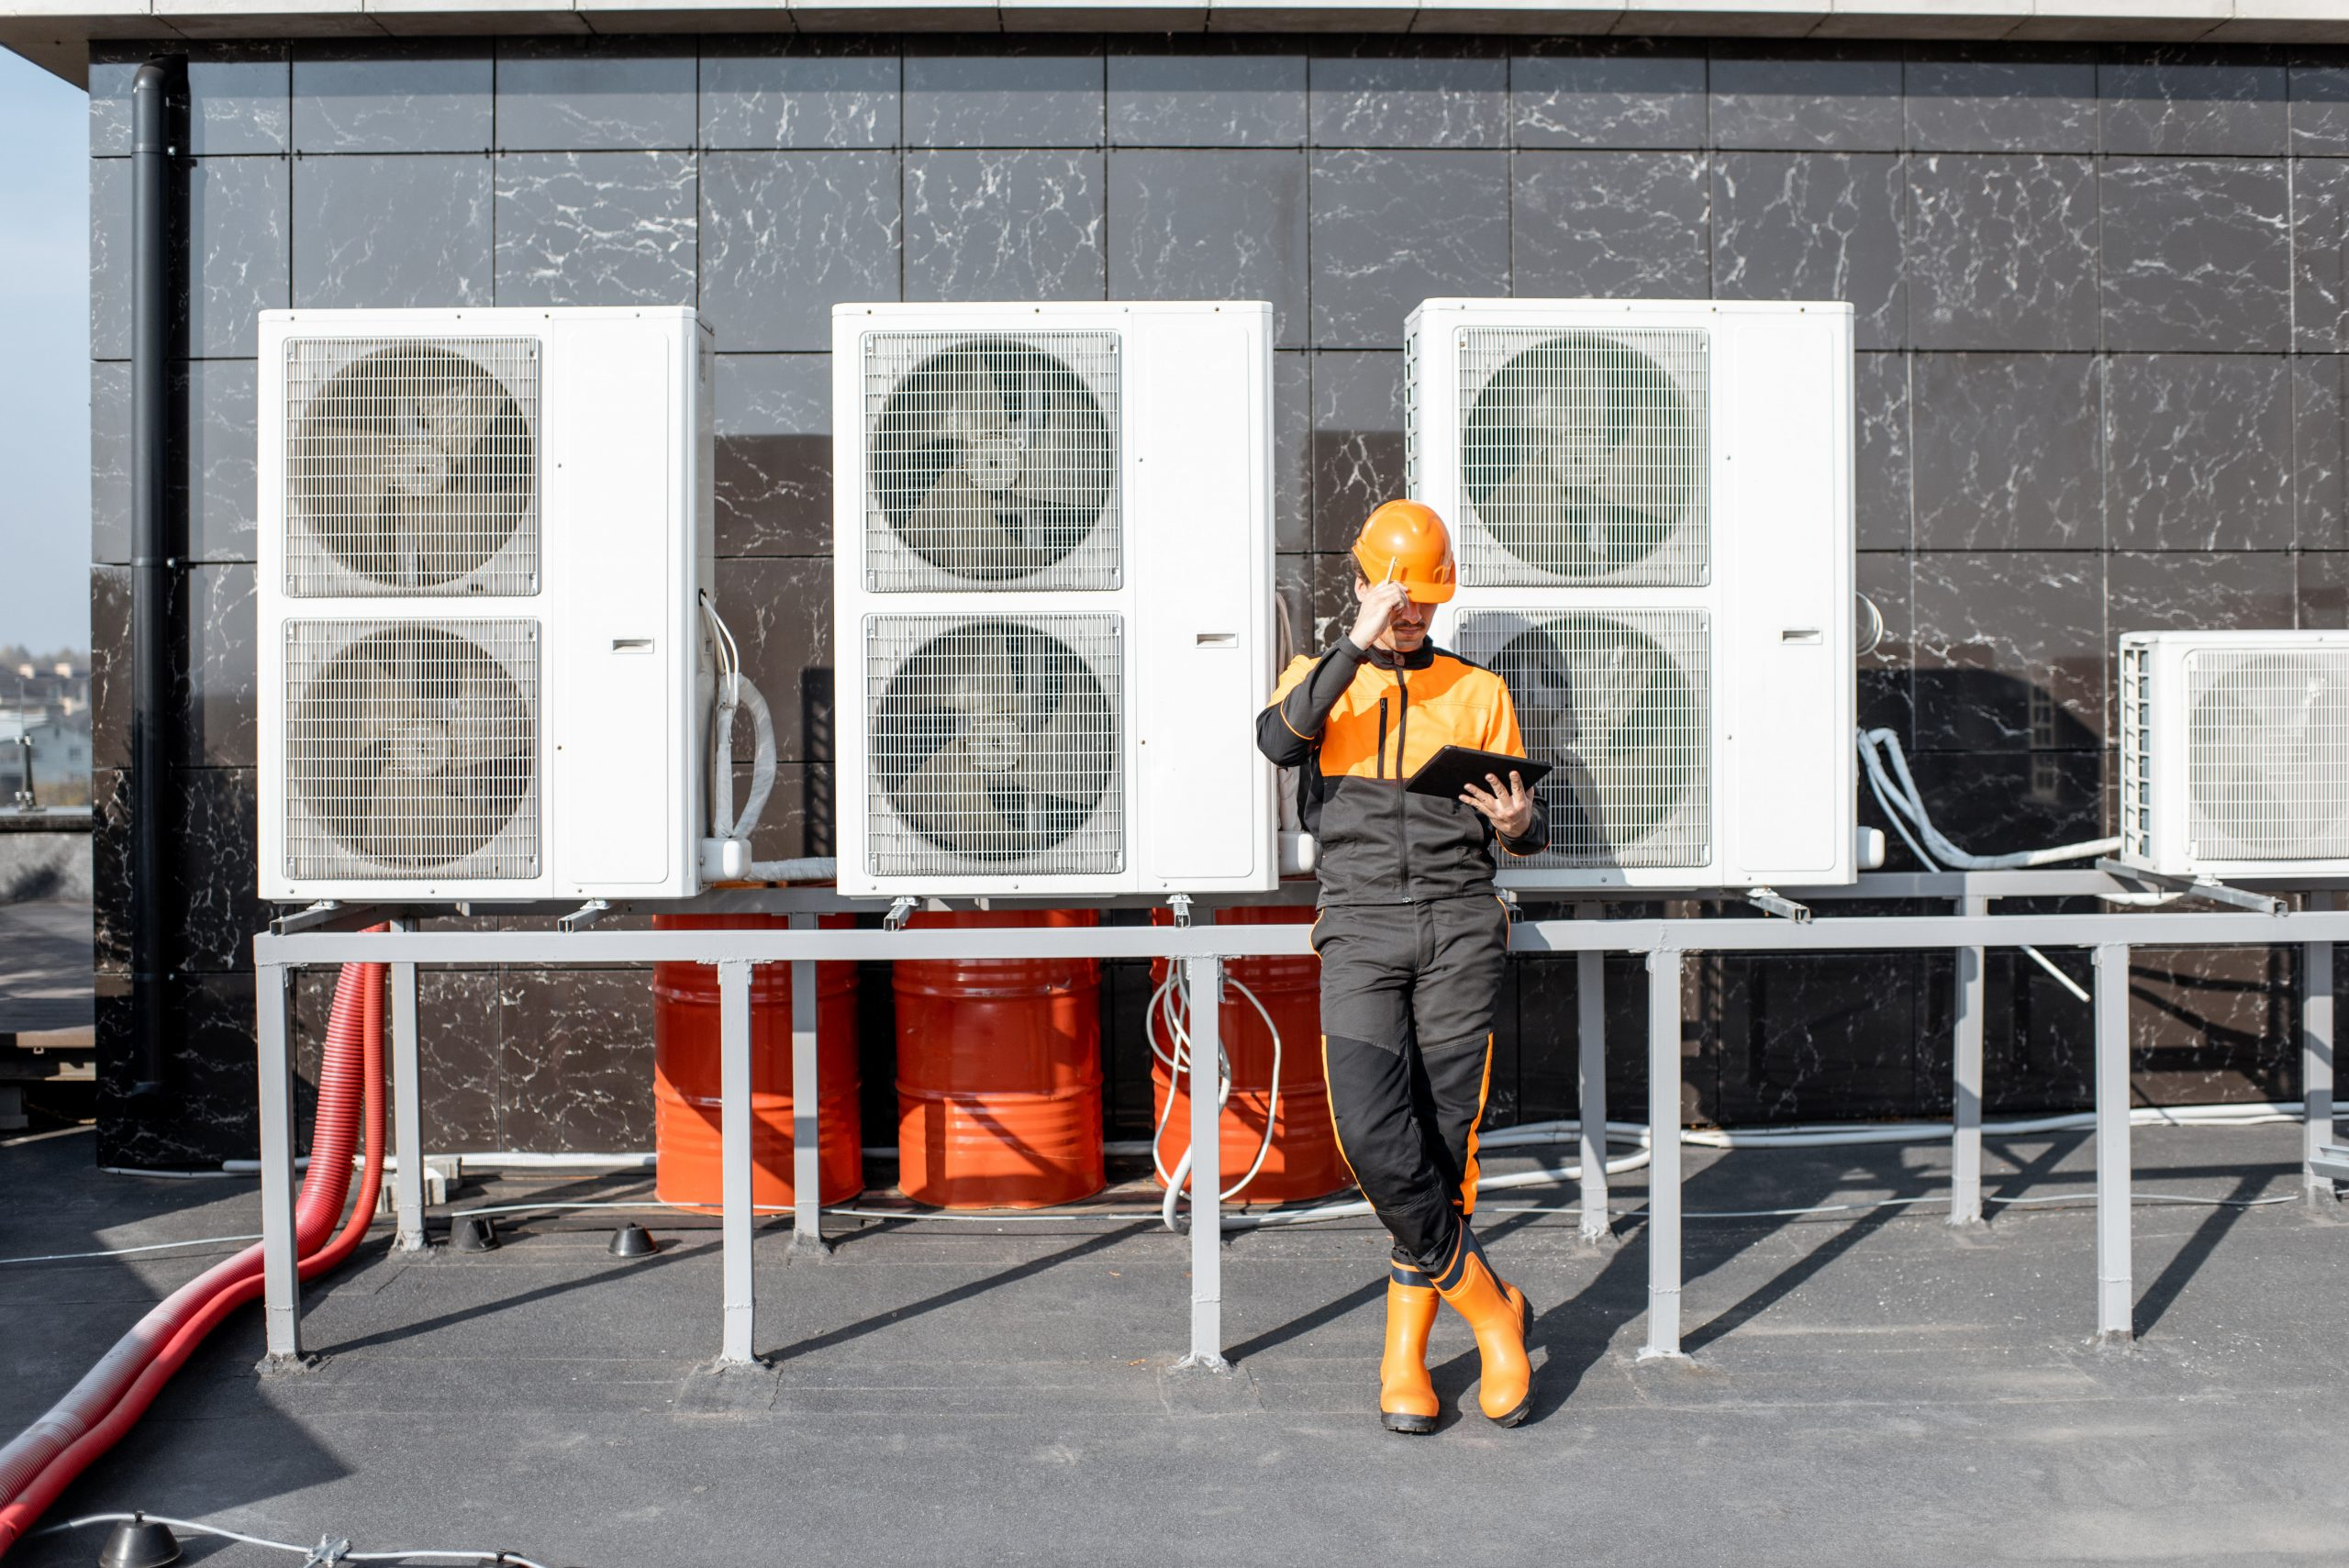 Workman servicing air conditioning or heat pump with digital tablet